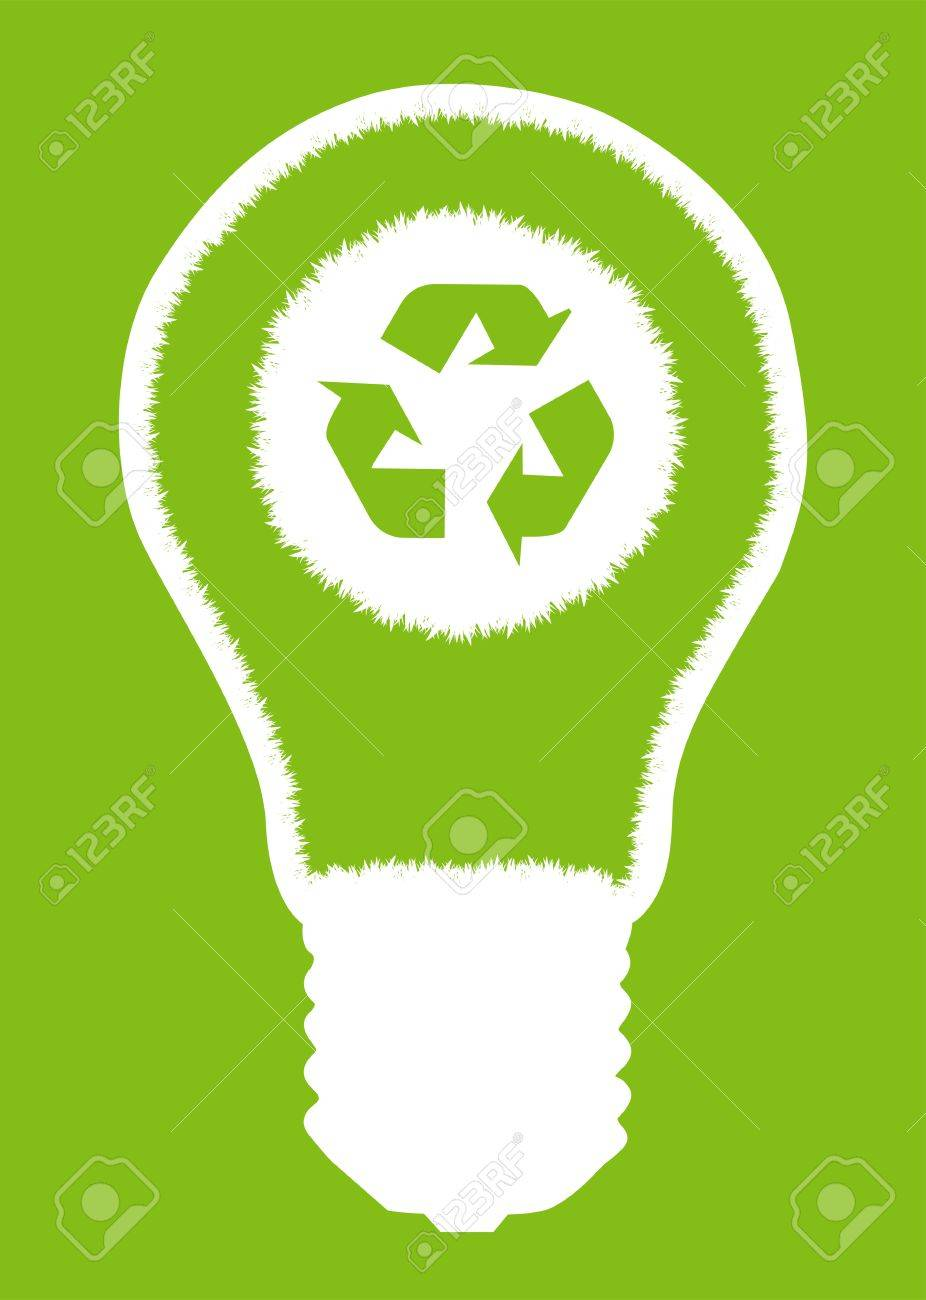 Green Grass Light Bulb And Recycle Round Inside. Recycling Concept Vector  Background Poster Stock Vector